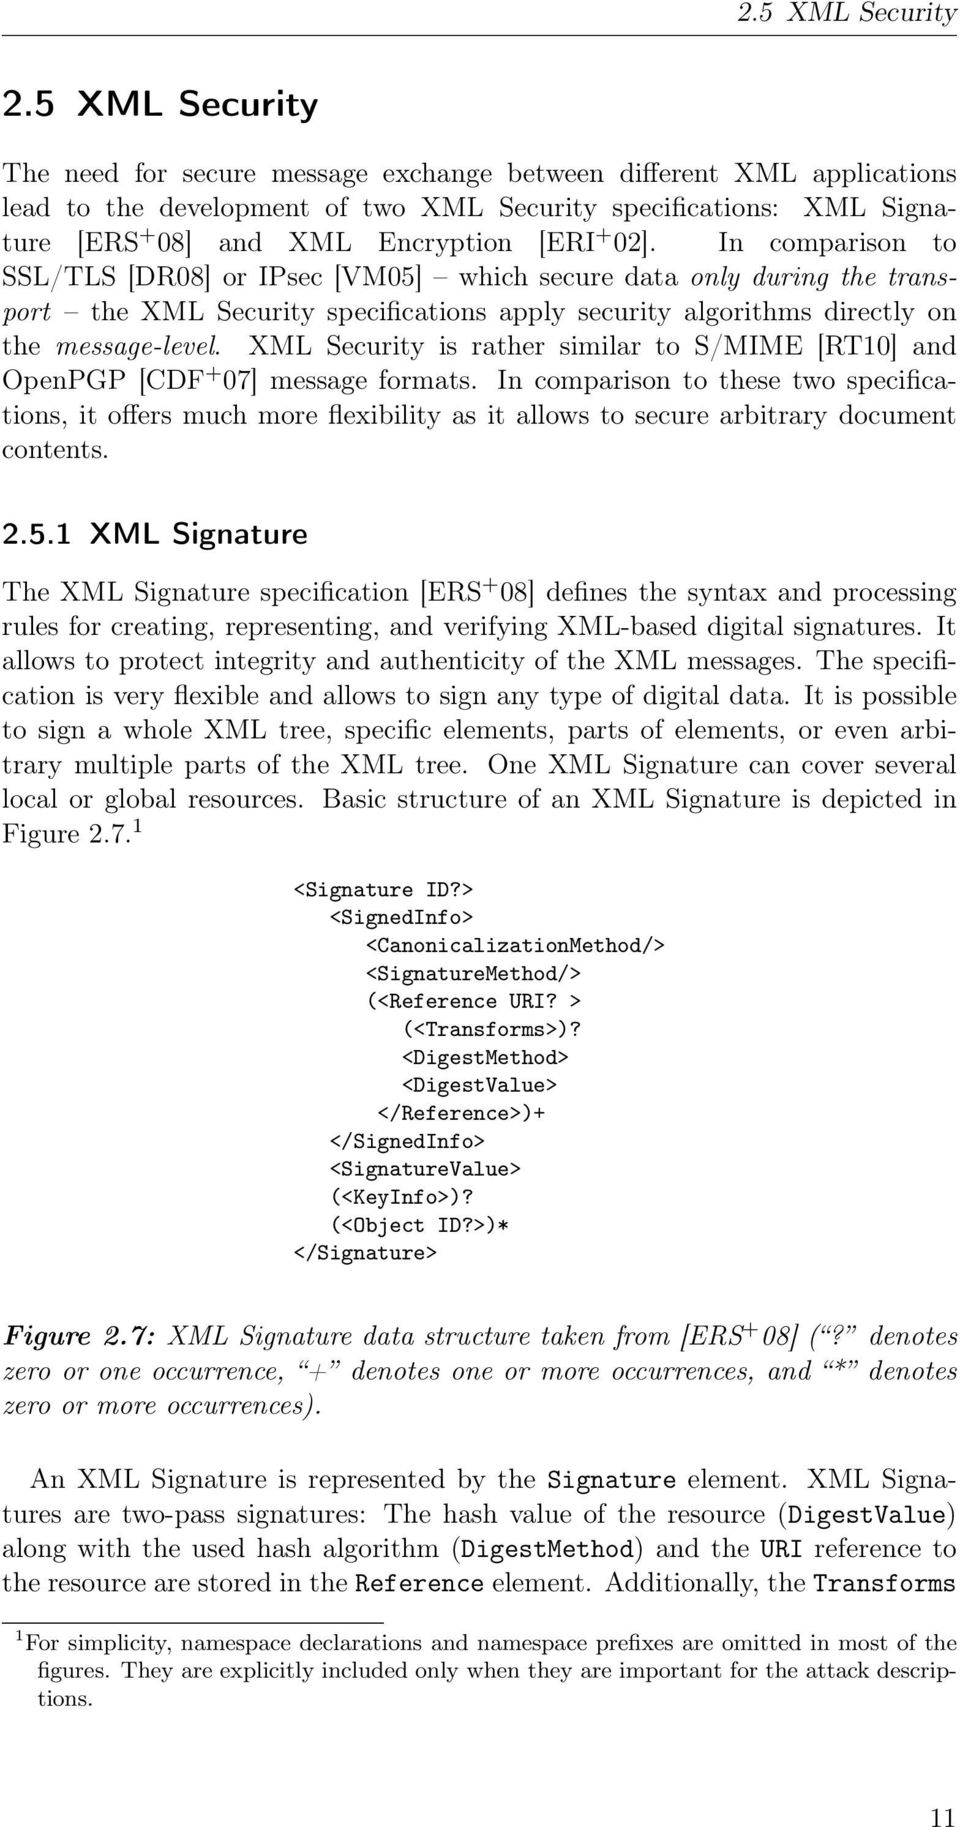 02]. In comparison to SSL/TLS [DR08] or IPsec [VM05] which secure data only during the transport the XML Security specifications apply security algorithms directly on the message-level.